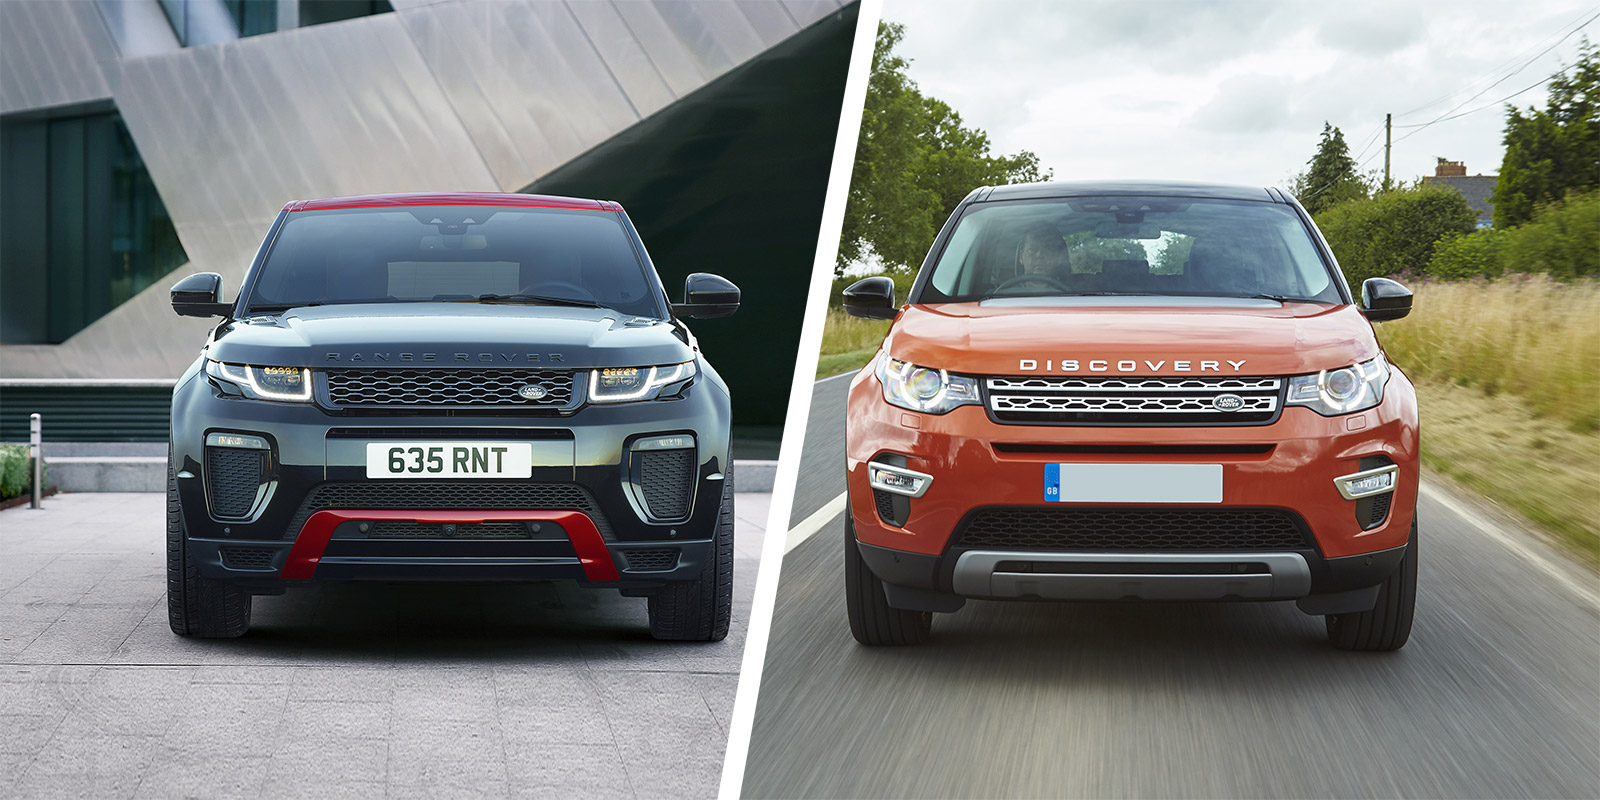 2015 Land Rover Range Rover Evoque Pure >> Range Rover Evoque vs Land Rover Discovery Sport | carwow